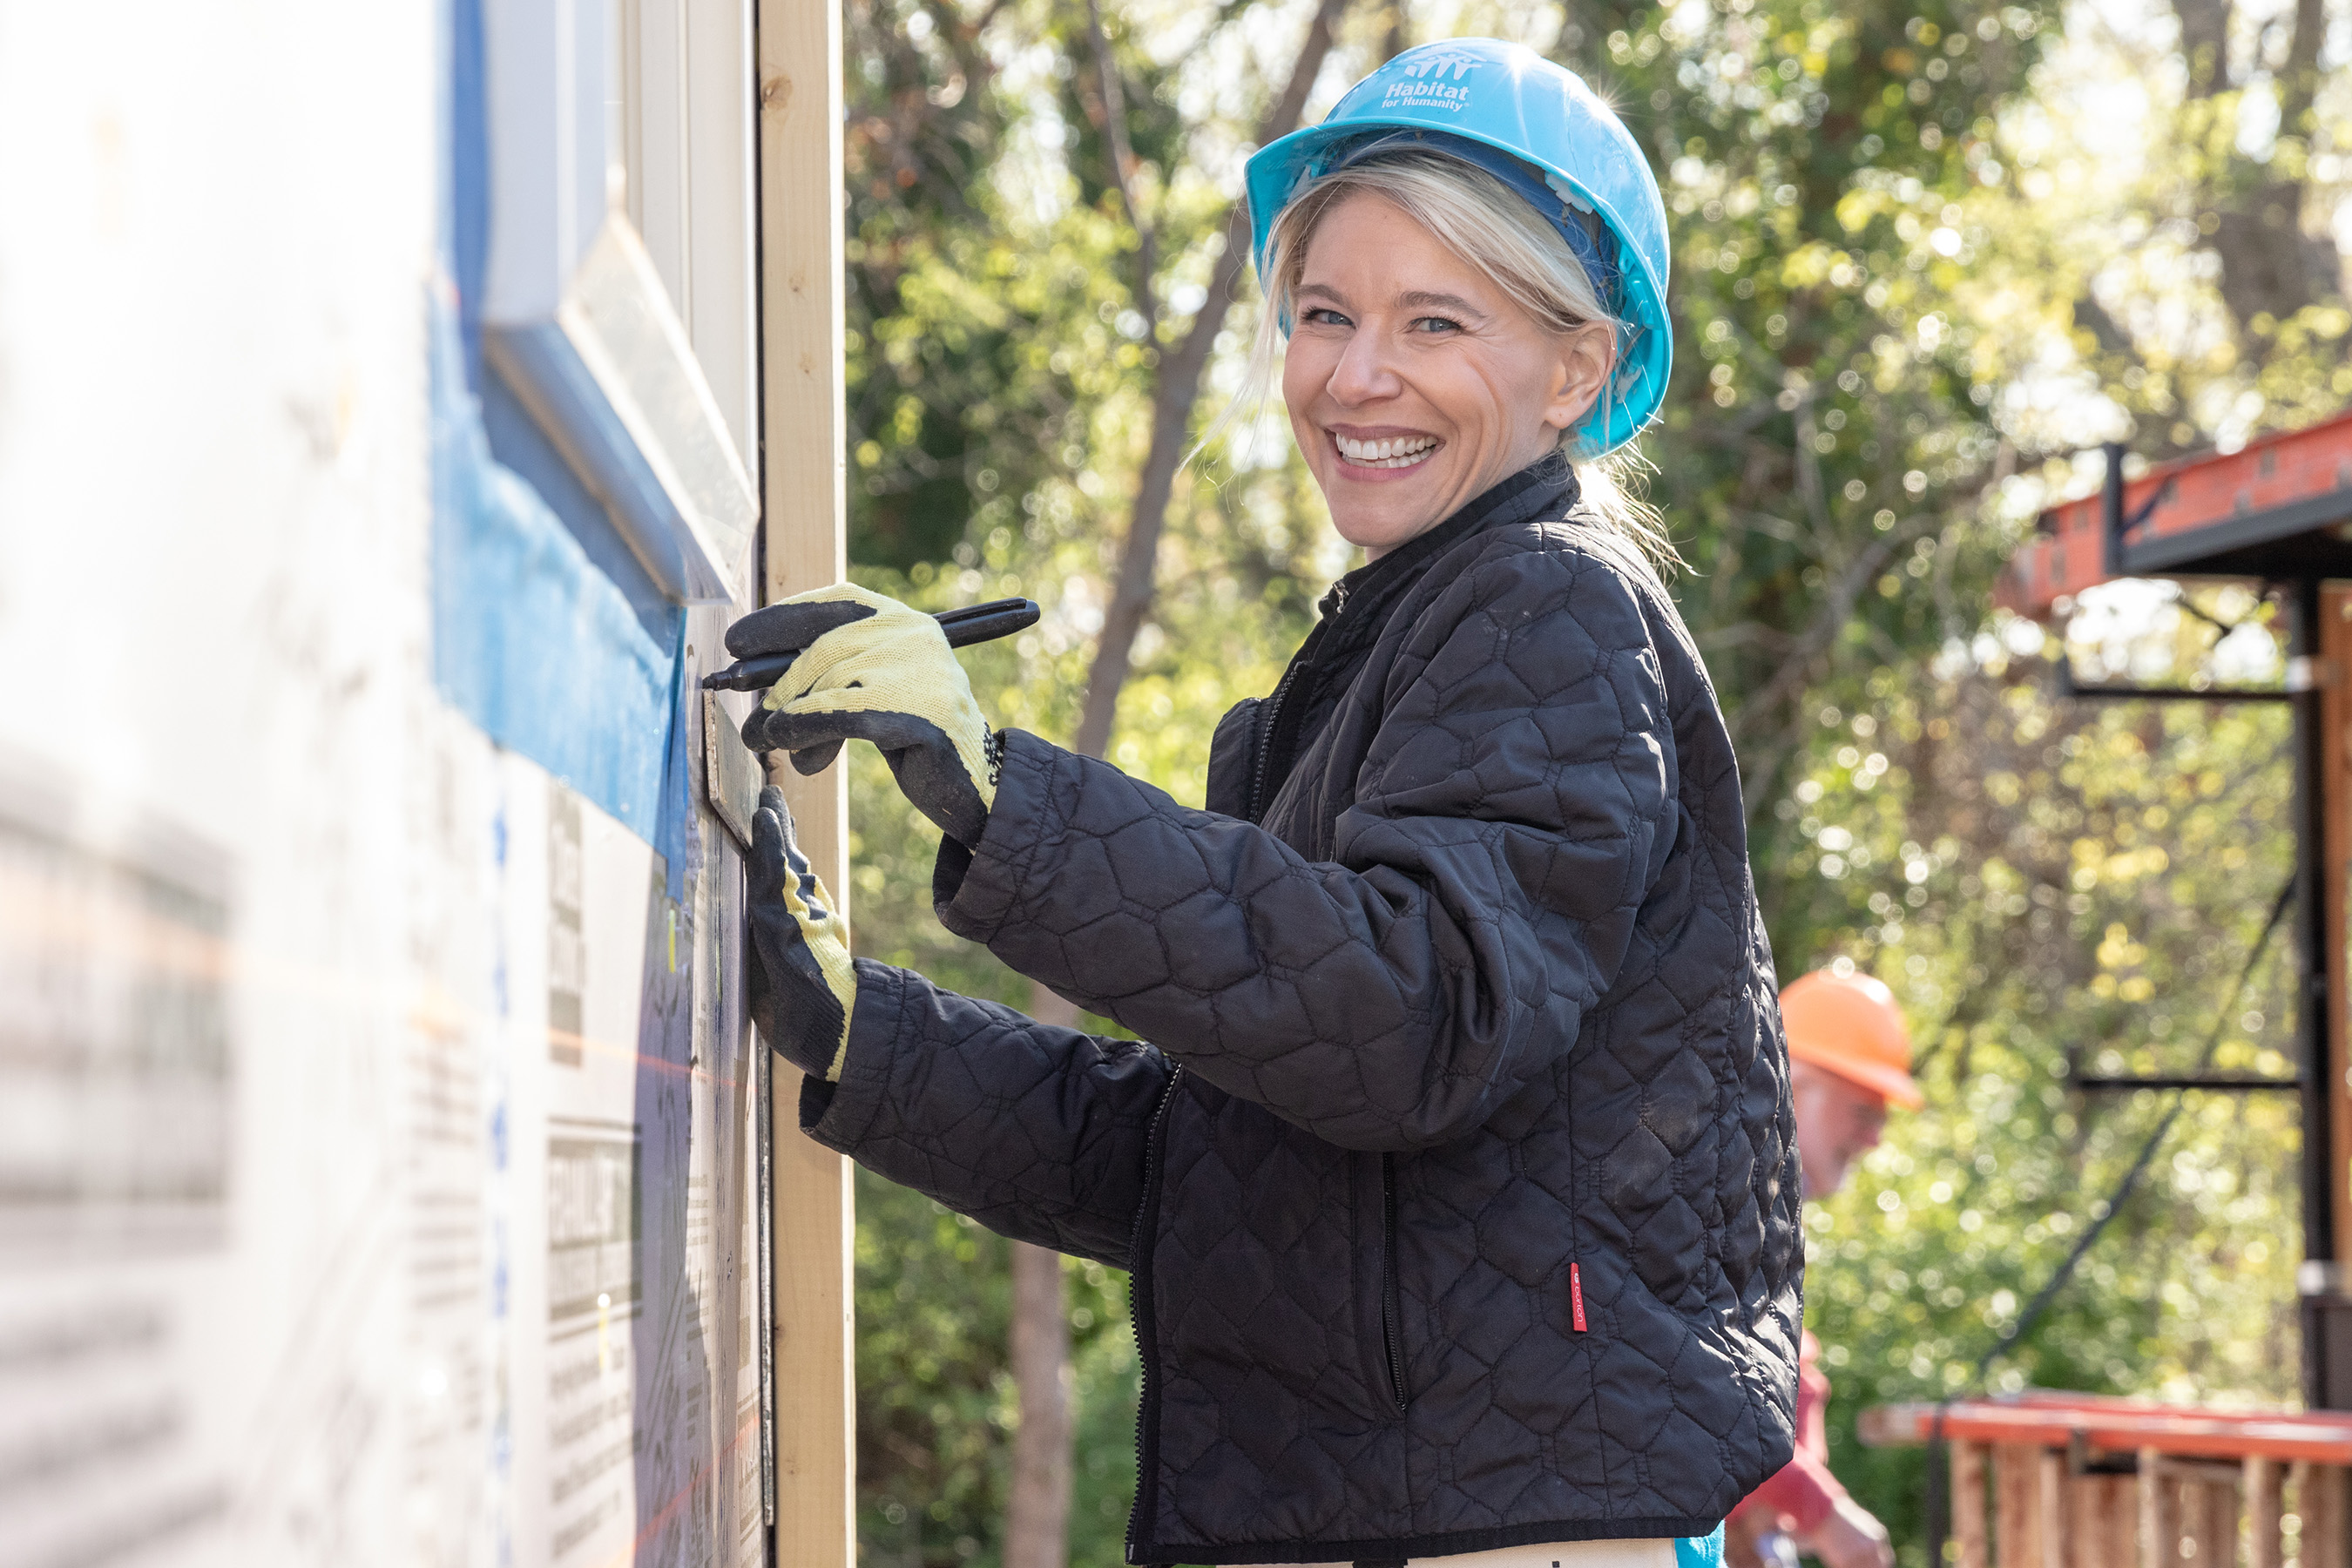 A volunteer with Chico's FAS, Inc., installs siding on a Habitat home at the launch of the Home is the Key campaign in Atlanta.